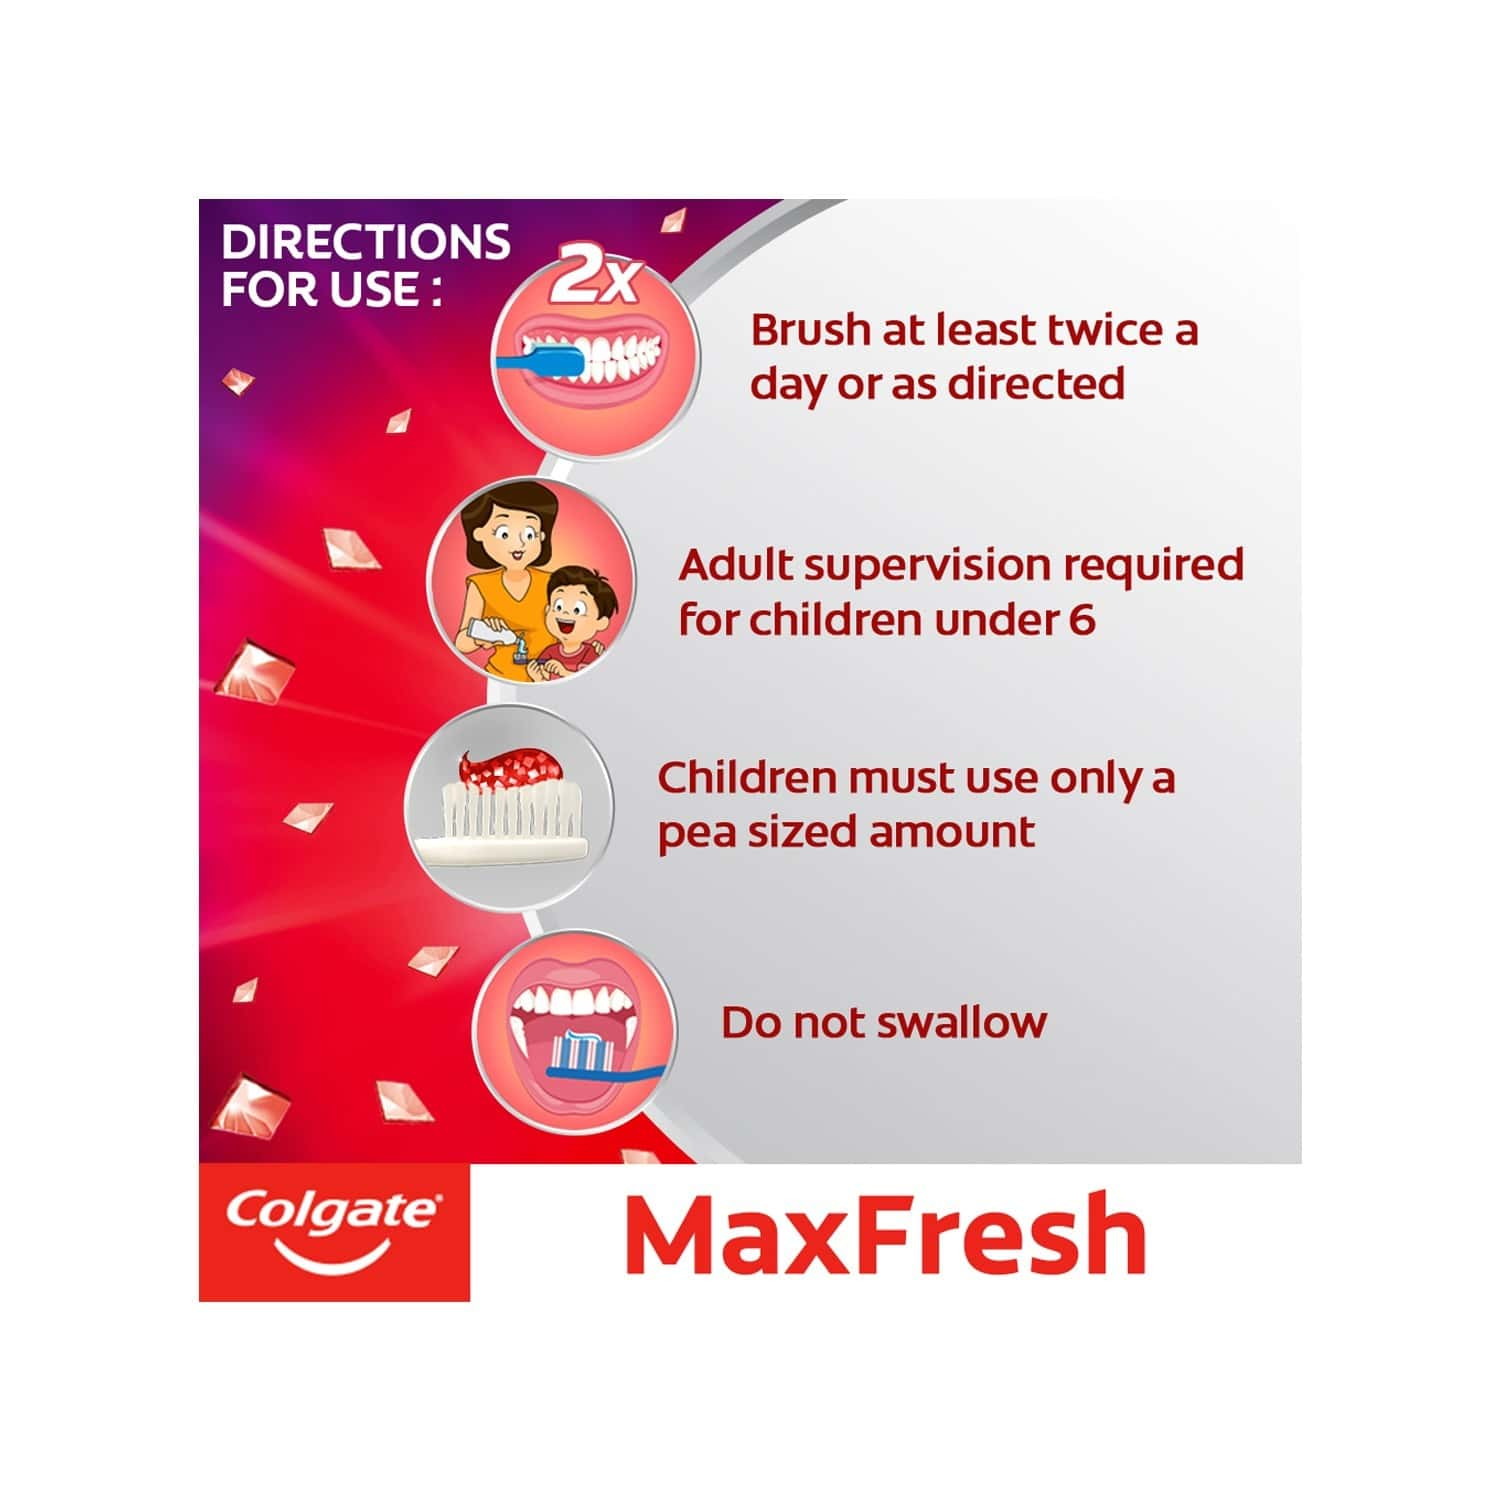 Colgate Maxfresh Toothpaste, Red Gel Paste With Menthol For Super Fresh Breath, 150g X 4 (spicy Fresh) - 600g